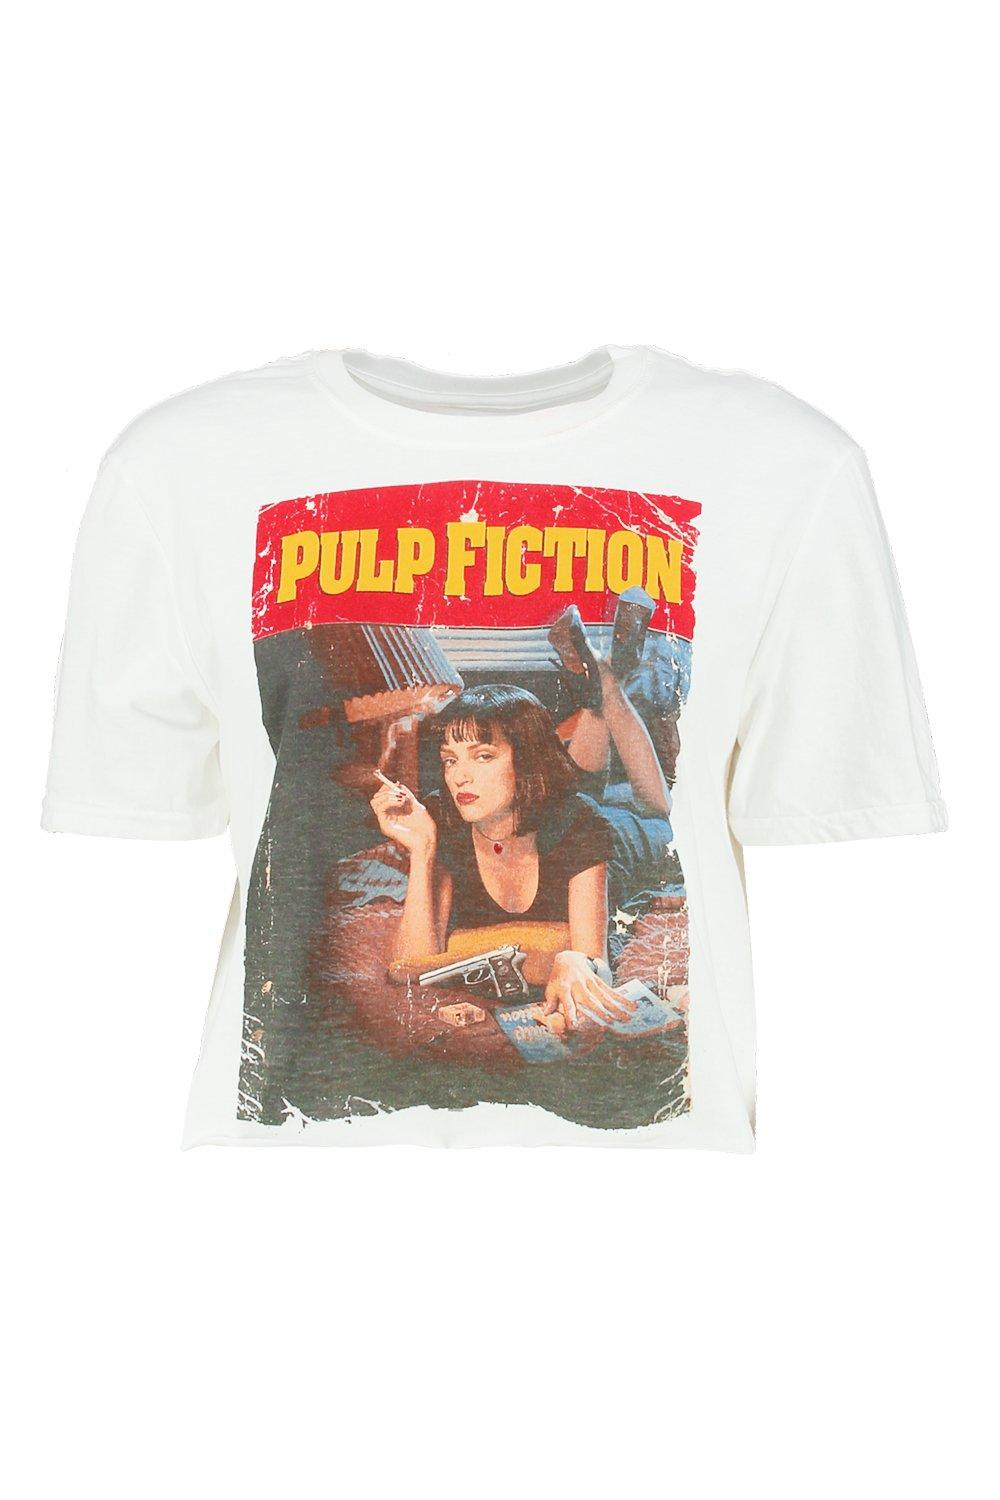 fiction corto Top de Blanco licencia pulp con PZqxrdXnaq